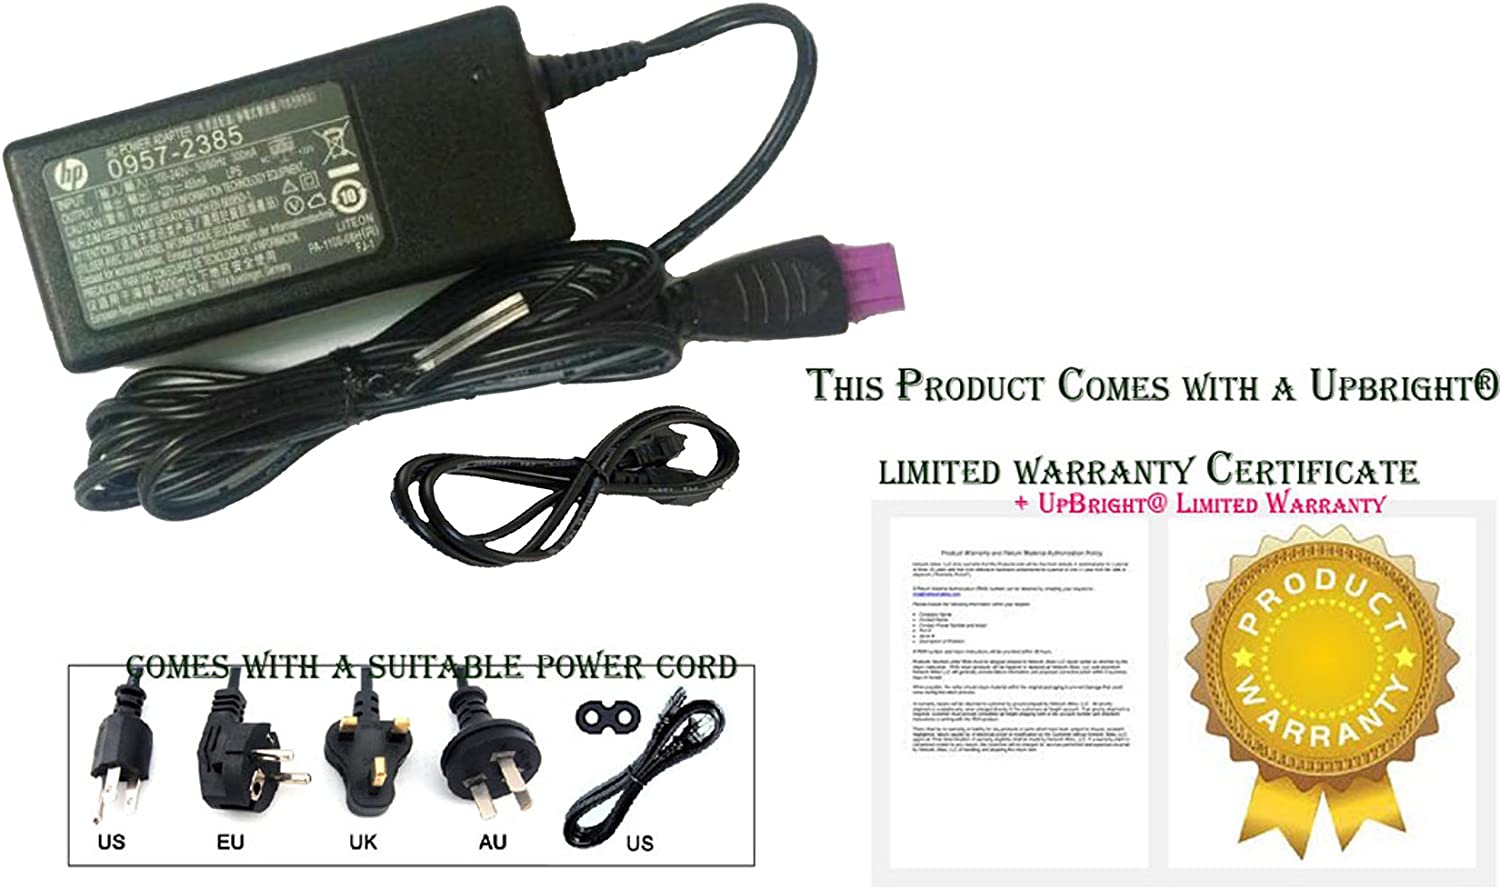 UpBright New Global Genuine OEM Original 22V 455MA AC/DC Adapter for HP Deskjet 1513 Printer (2385) 0957-2385 Power Supply Cord Cable PS Battery Charger Mains PSU